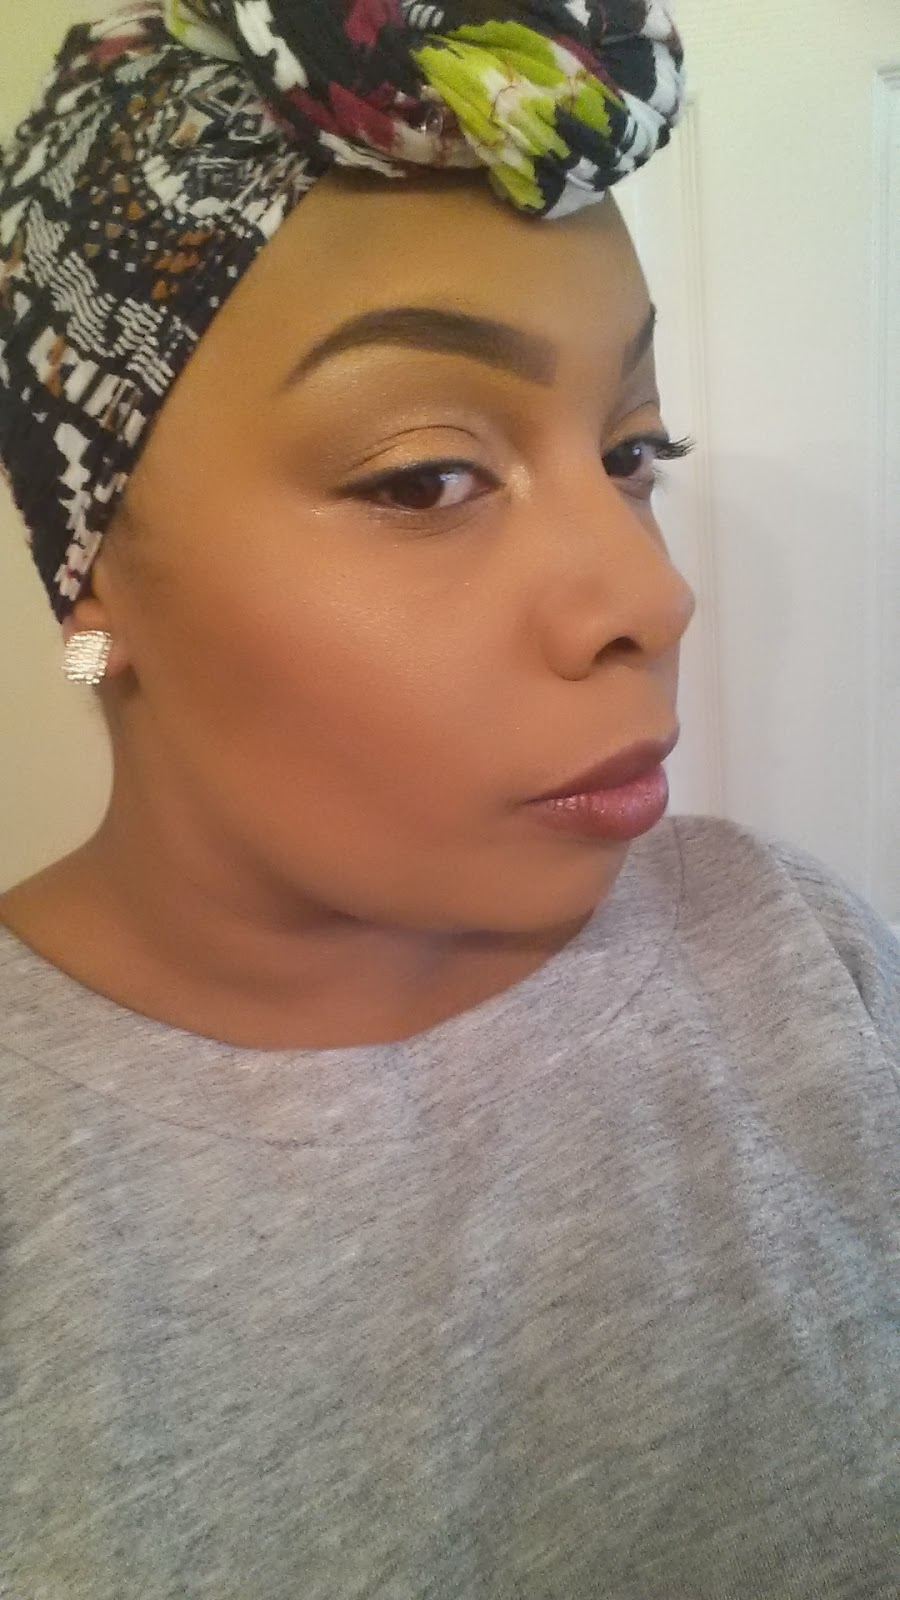 ProductReviewMom.com Neutral Makeup Look